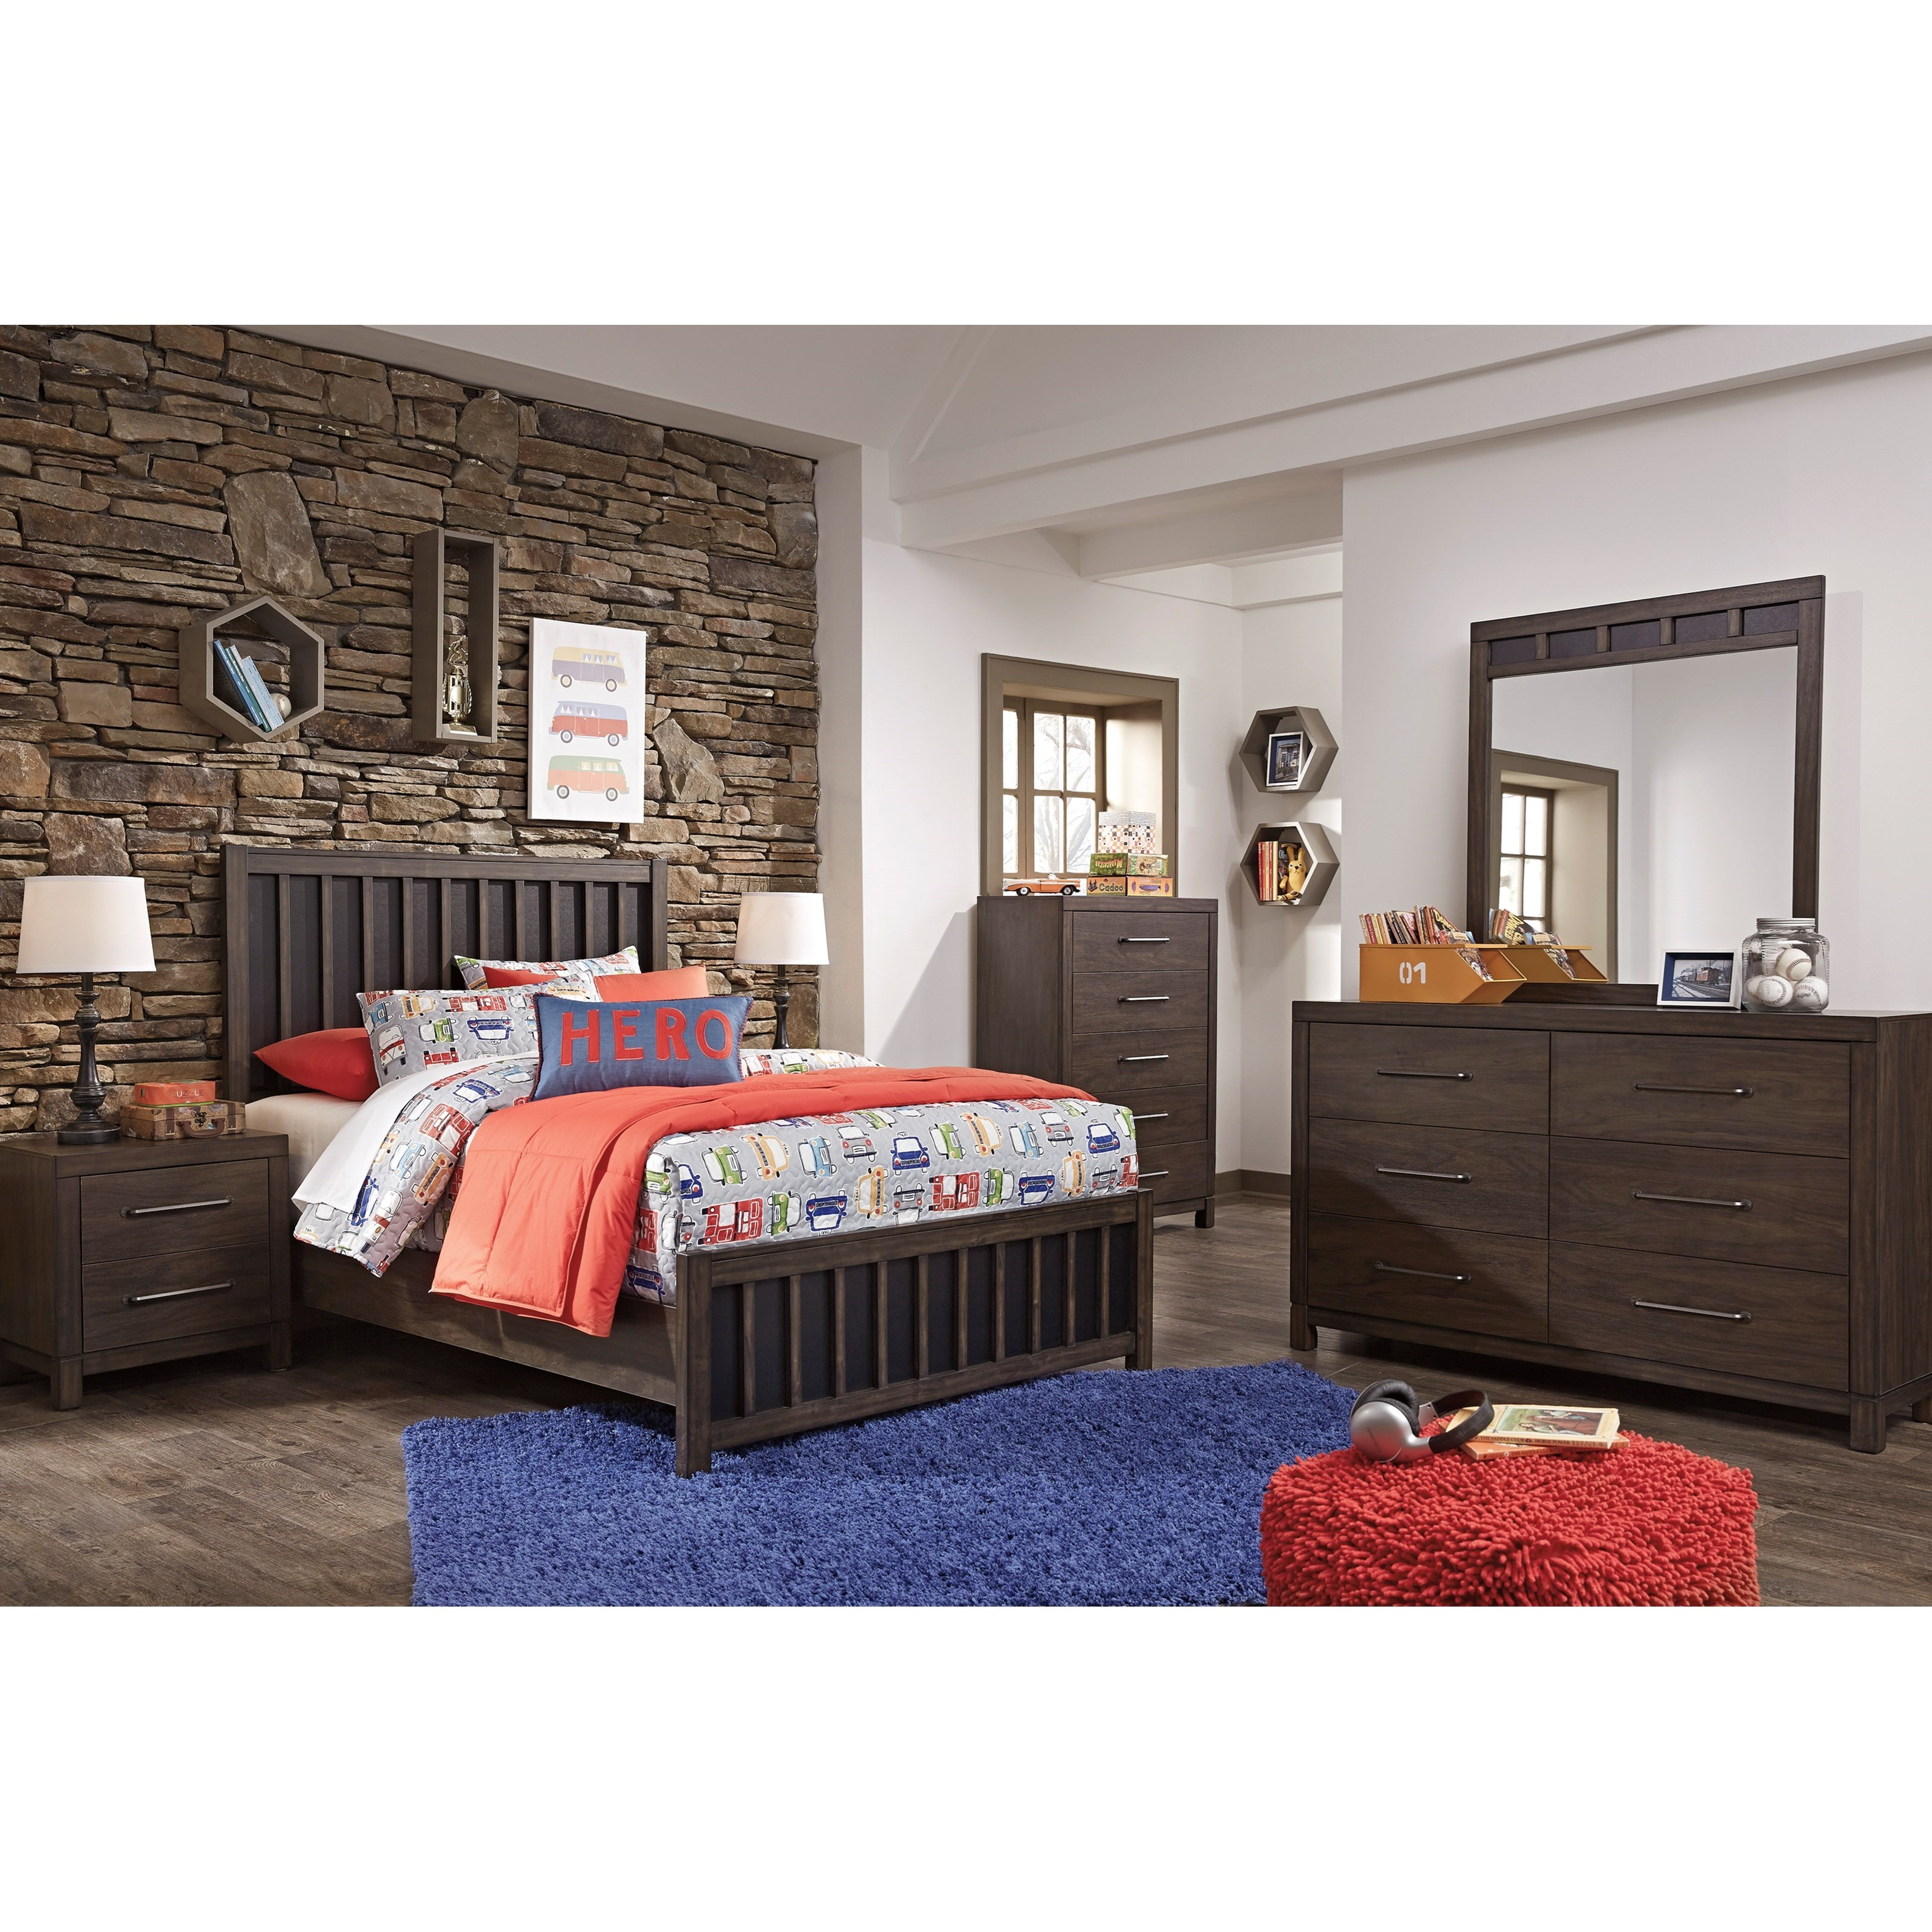 Signature Design by Ashley Brissley Full Bedroom Group Royal